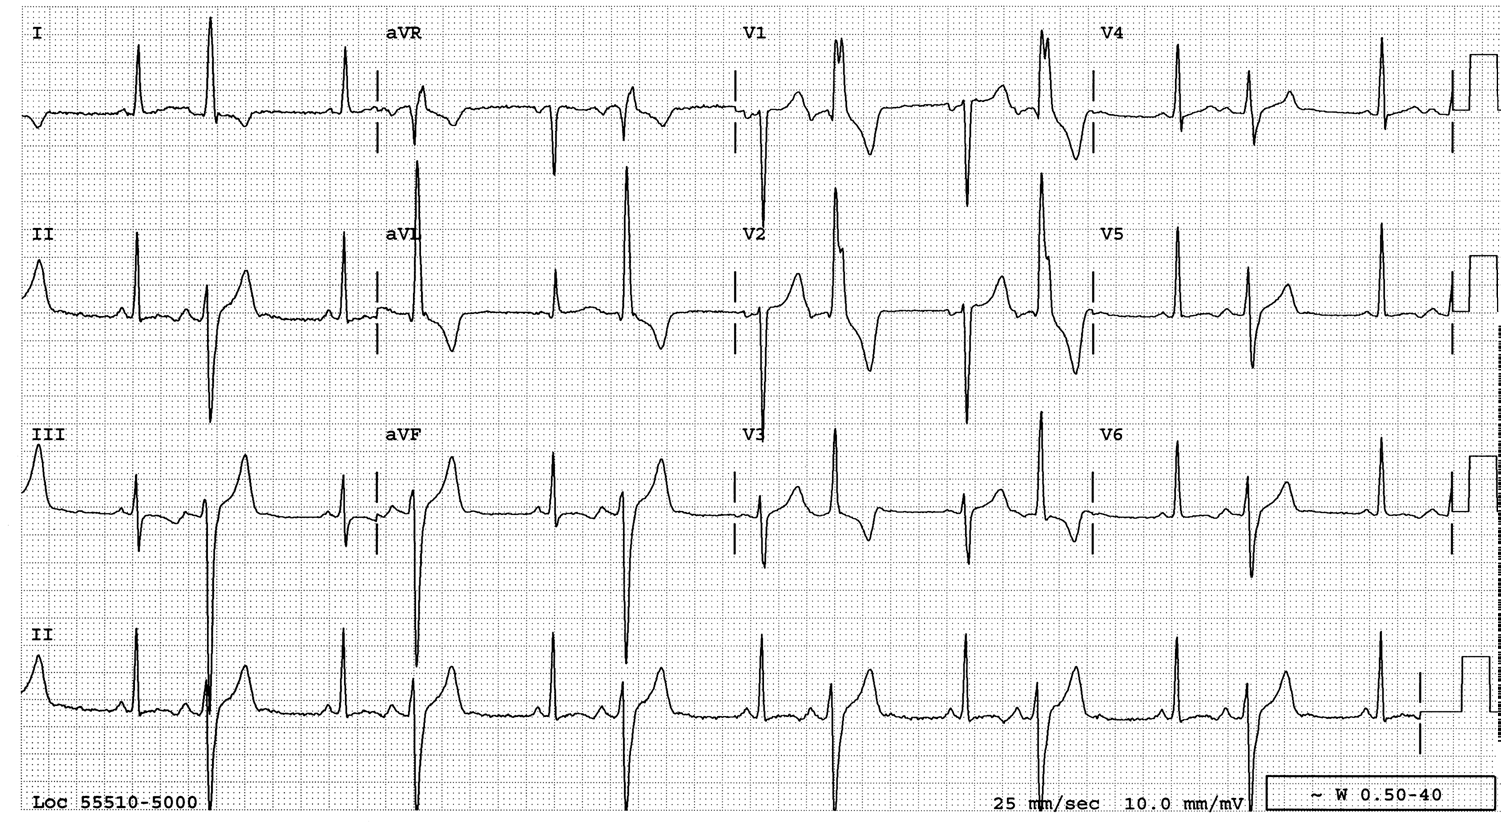 Dr Smith S Ecg Blog Pvc Or Aberrant Conduction Another Guest Post From Dr Wang